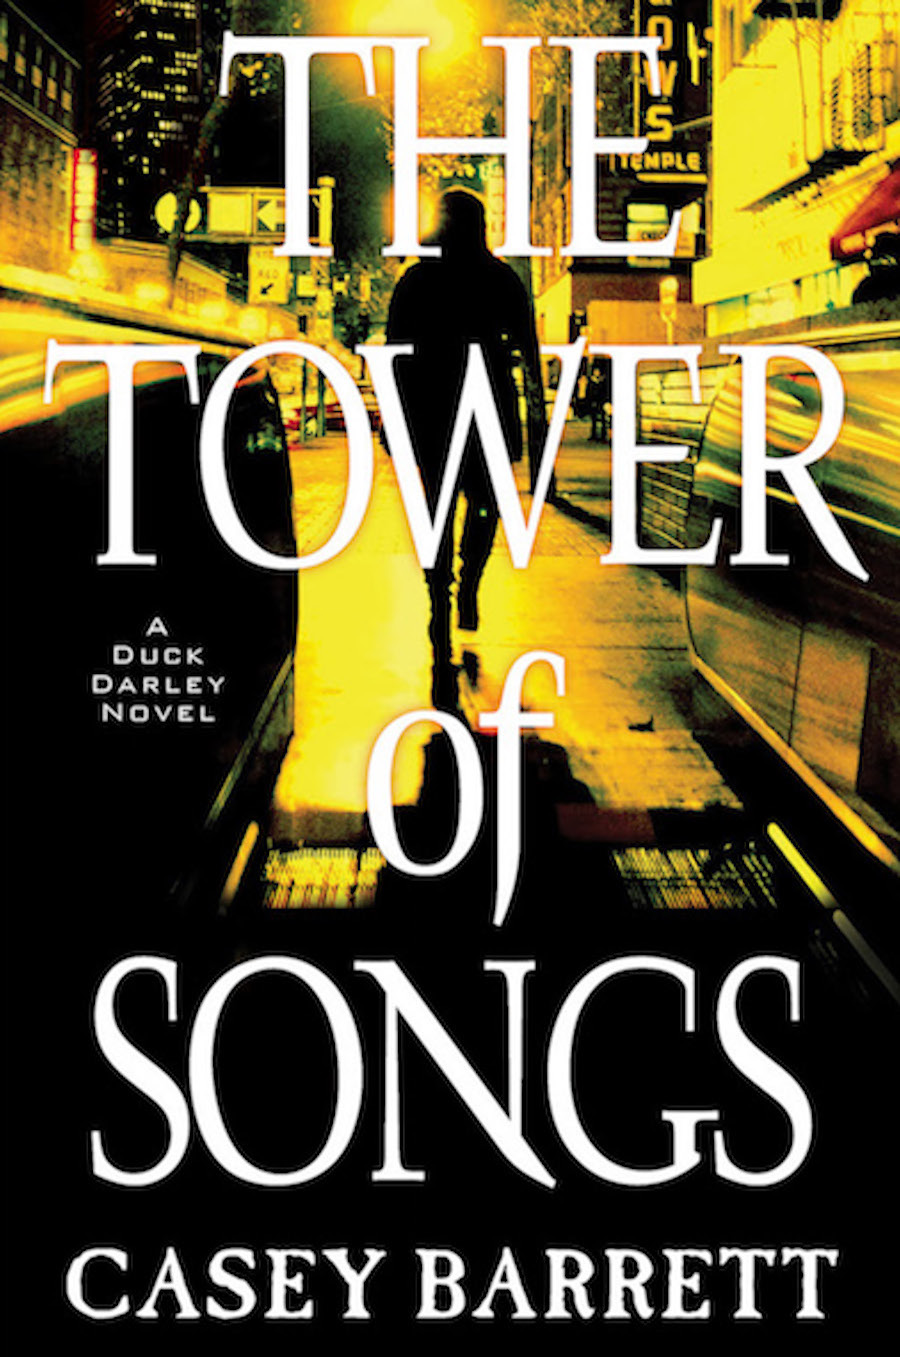 The Tower of Songs HC.jpg